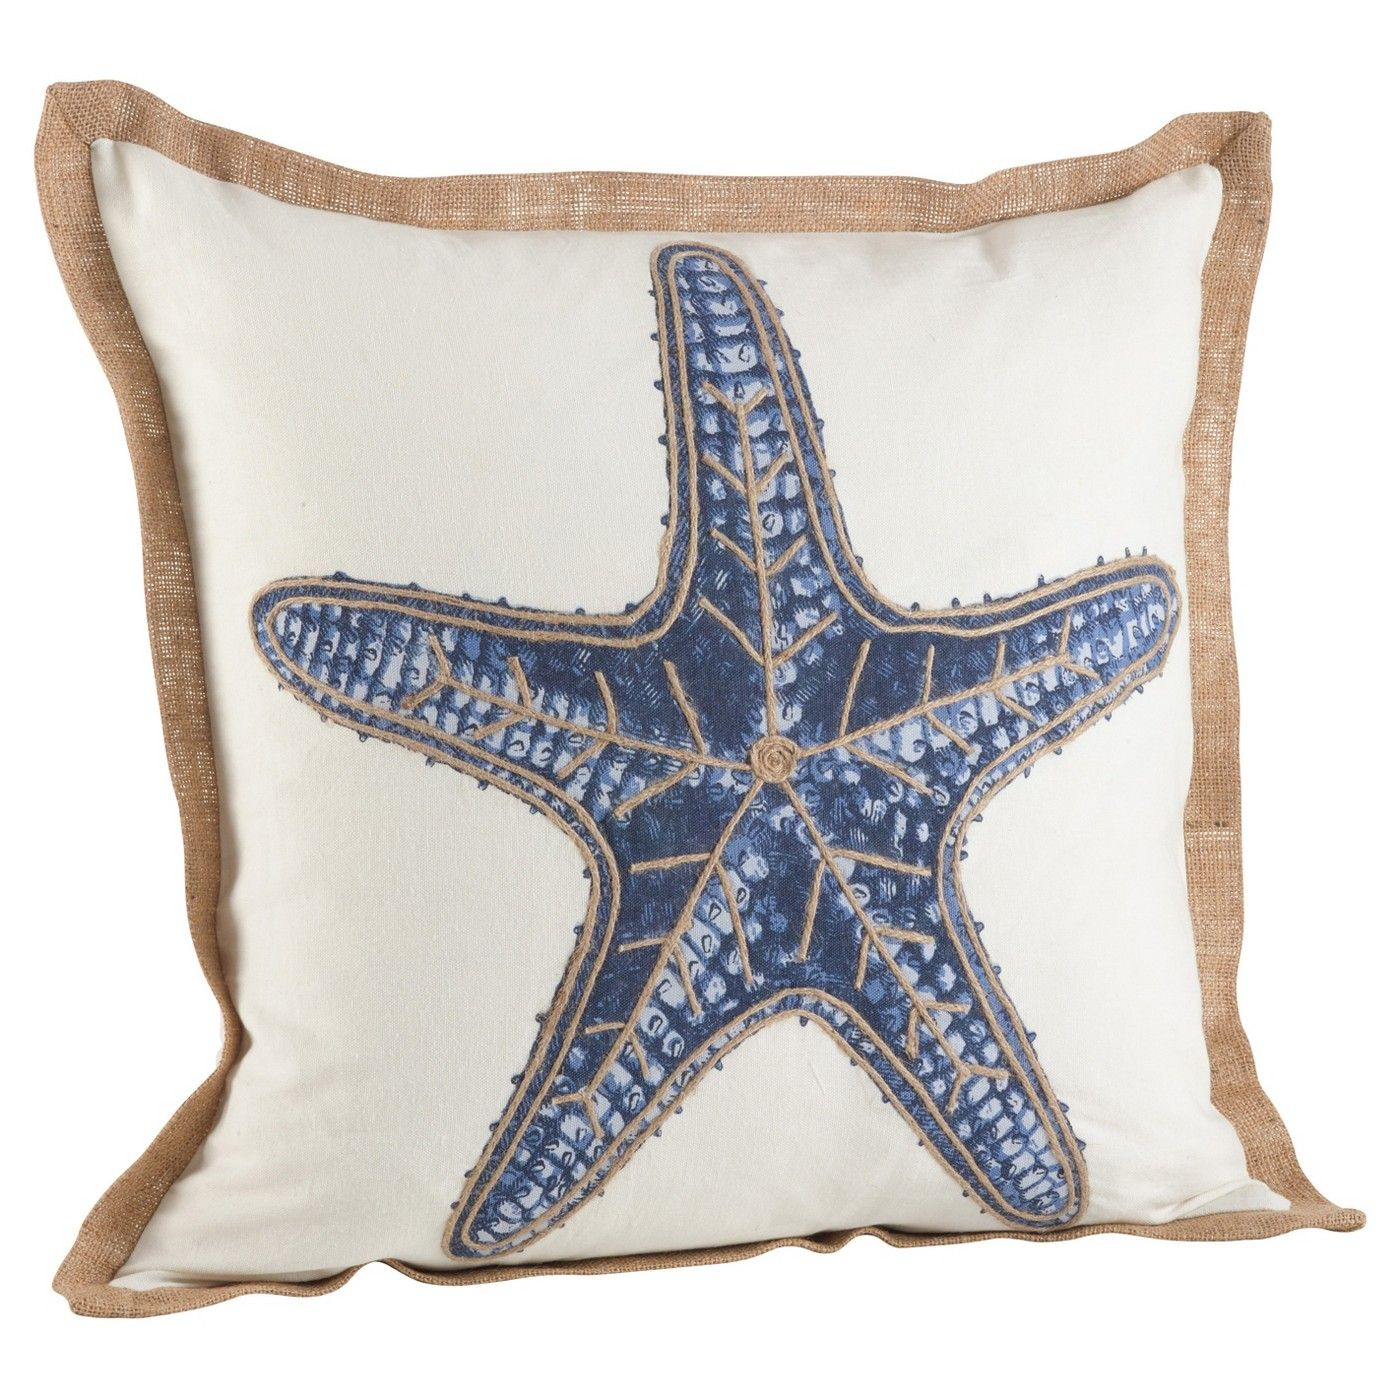 Navy Blue Star Fish Print Cotton Throw Pillow 20 Let Your Quirky And Vibrant Personality Shine With Coastal Throw Pillows Throw Pillows Cotton Throw Pillow